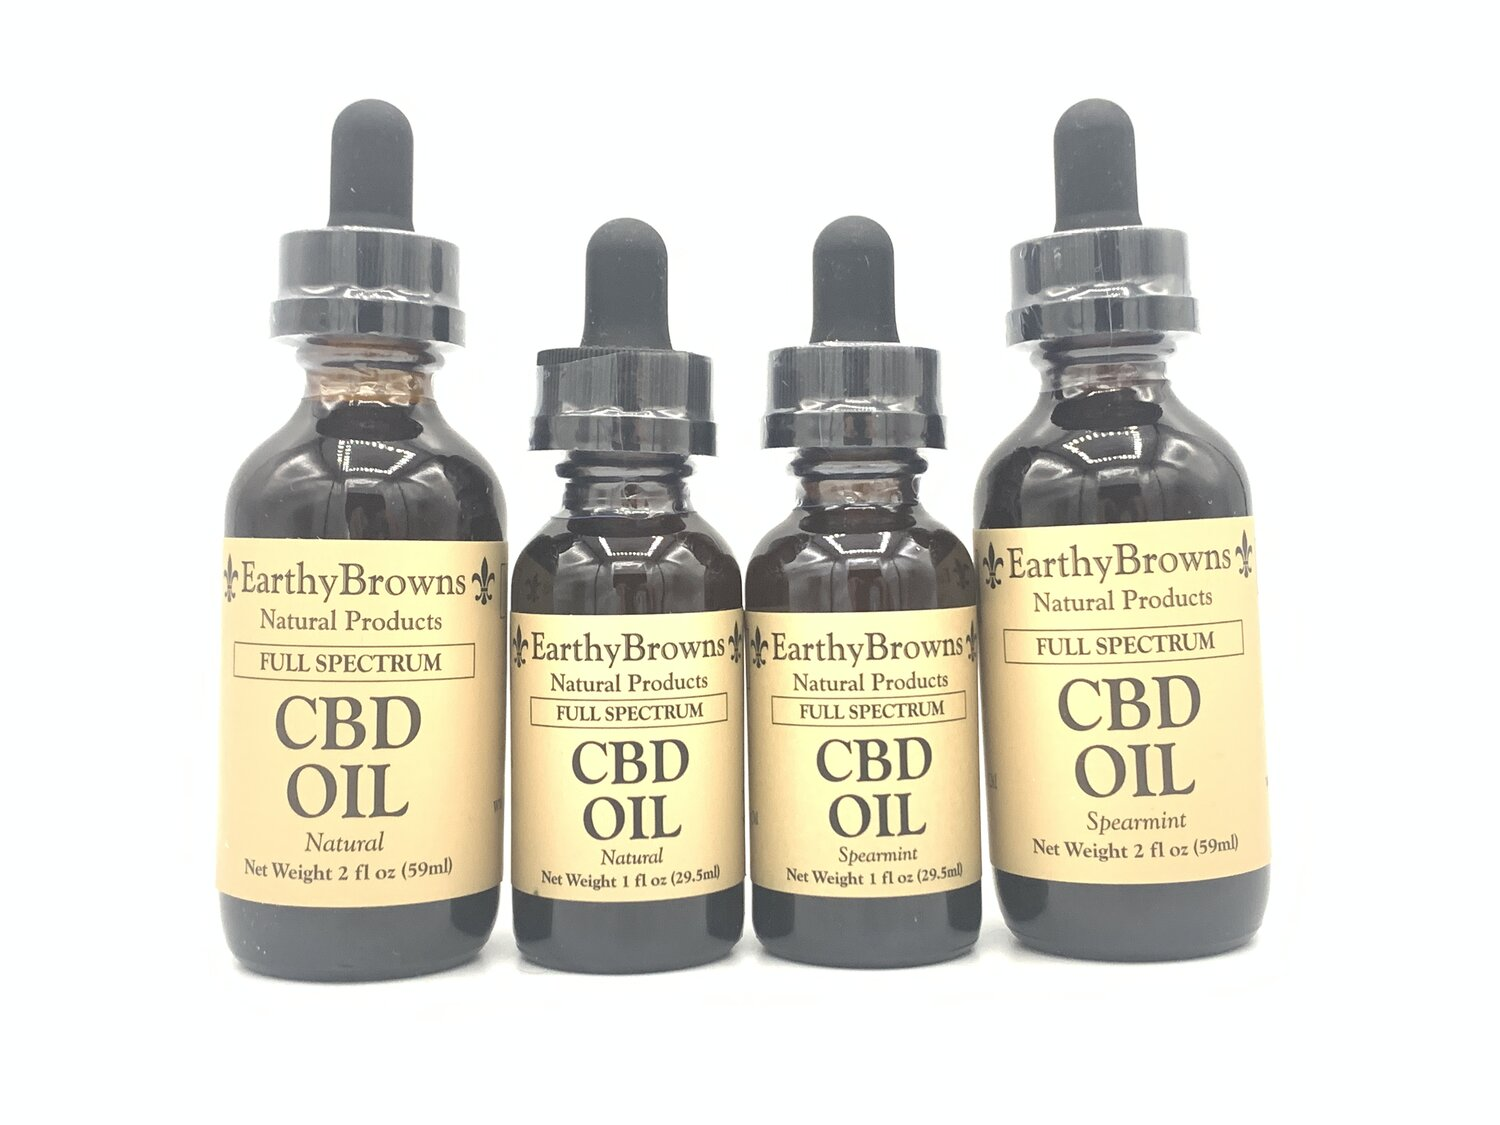 Earthy Browns CBD Oil